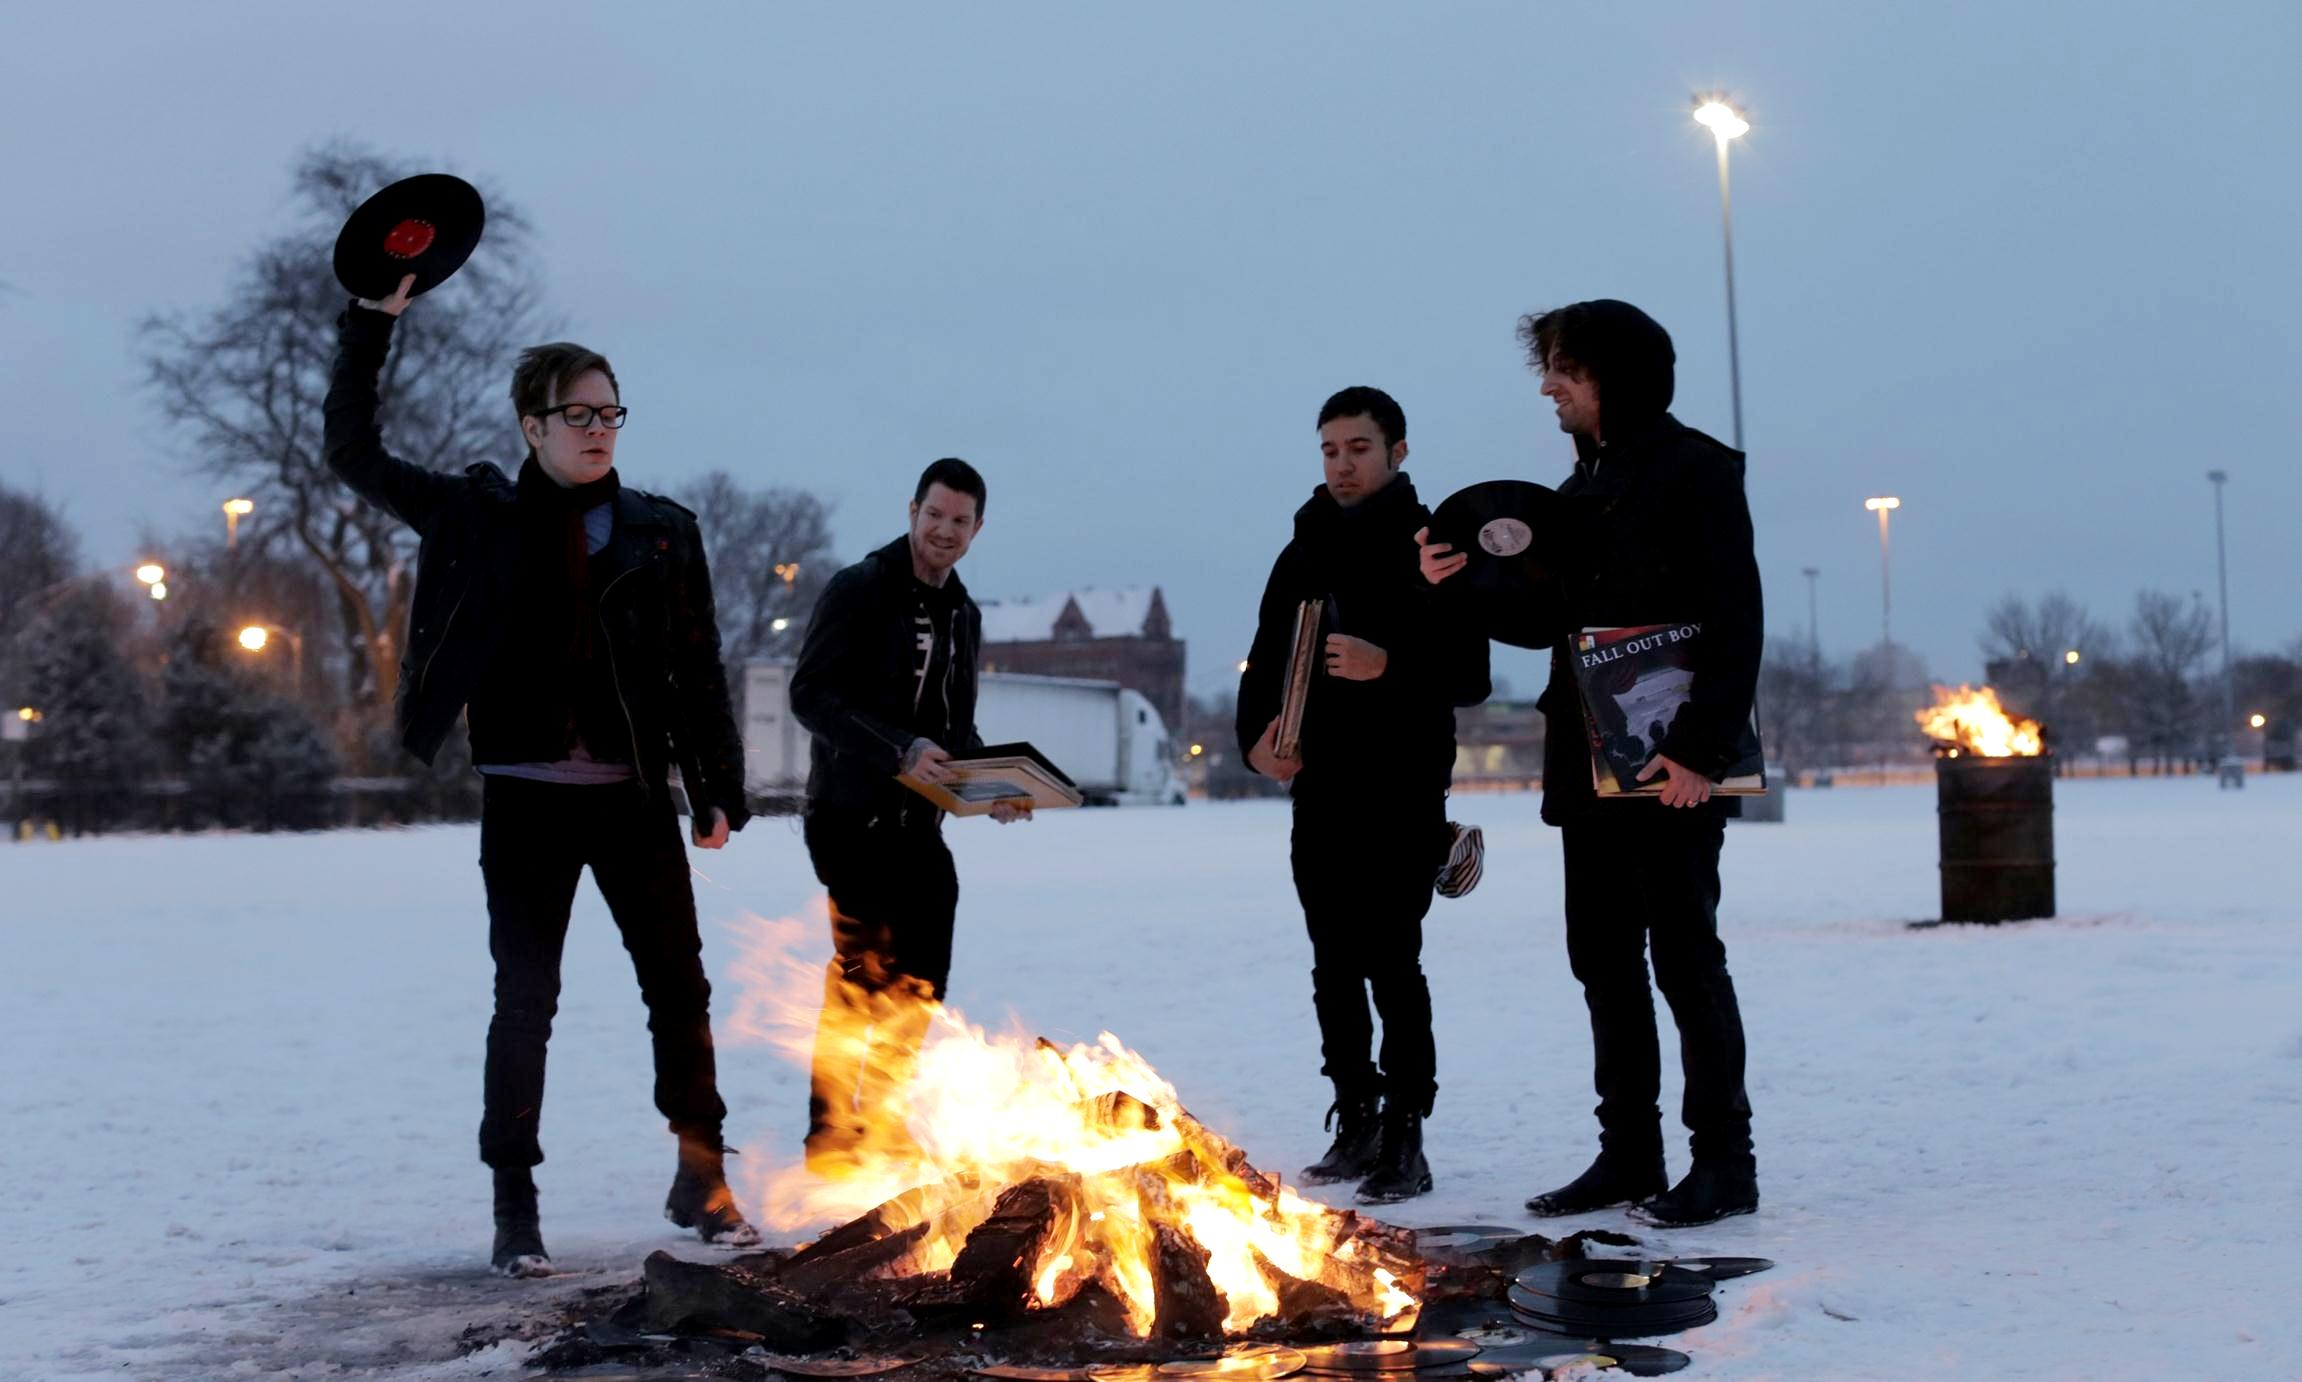 Fall Out Boy HD Wallpaper | Background Image | 2302x1382 | ID:410981 - Wallpaper Abyss